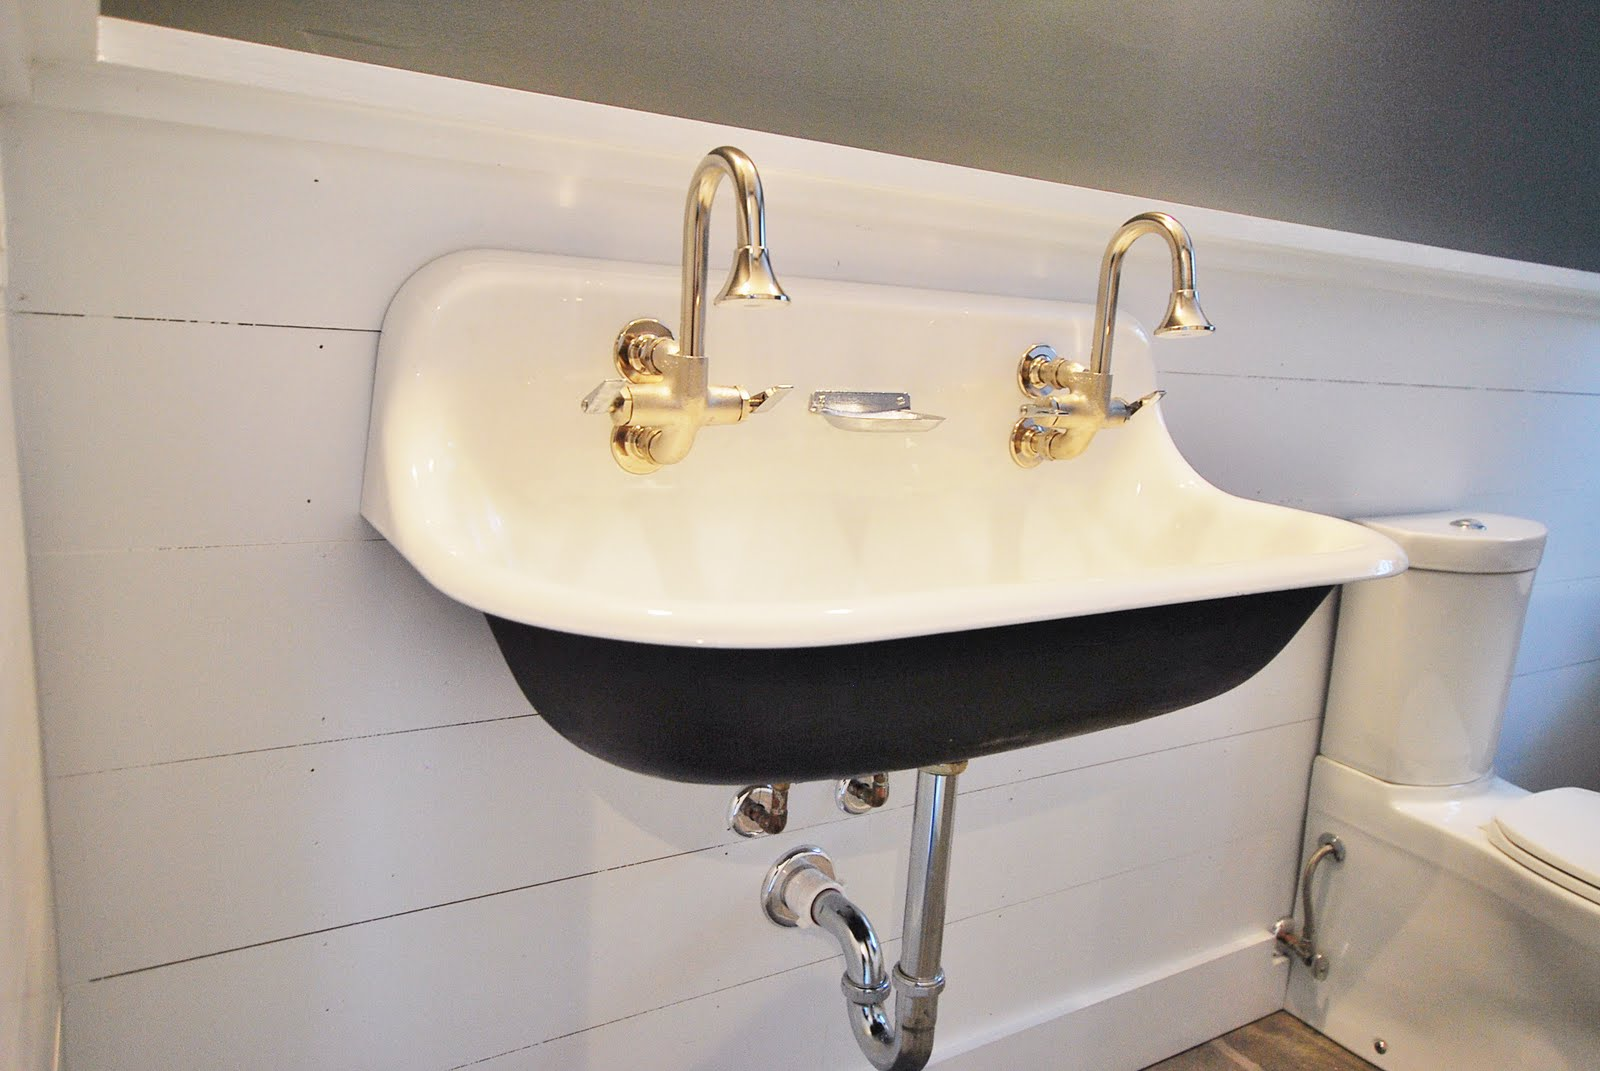 small wall mounted sink: a good choice for space